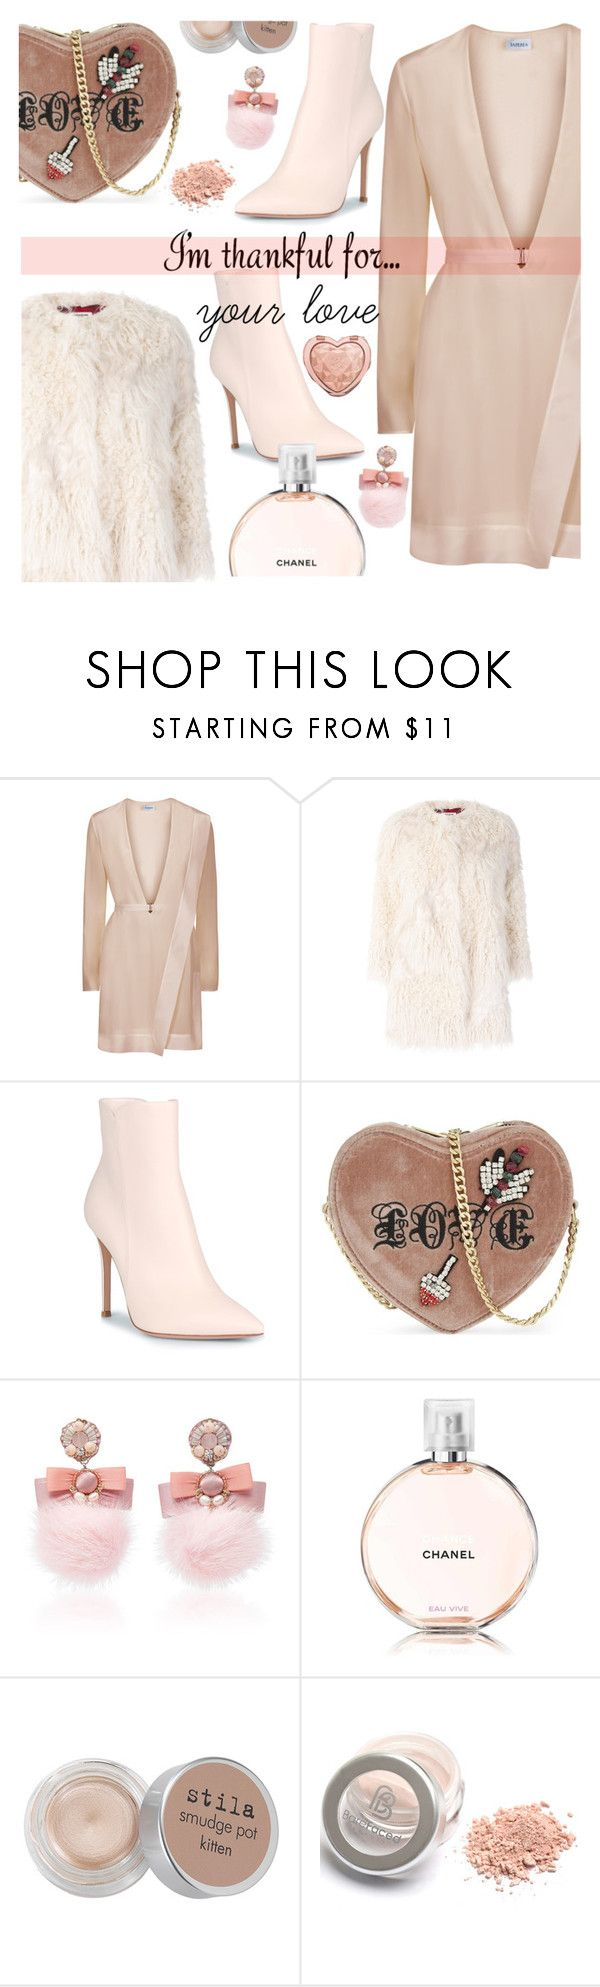 """""""I'm thankful for your love"""" by freshprincesse ❤ liked on Polyvore featuring La Perla, Zadig & Voltaire, Gianvito Rossi, Kurt Geiger, Ranjana Khan, Chanel, Stila and Too Faced Cosmetics"""